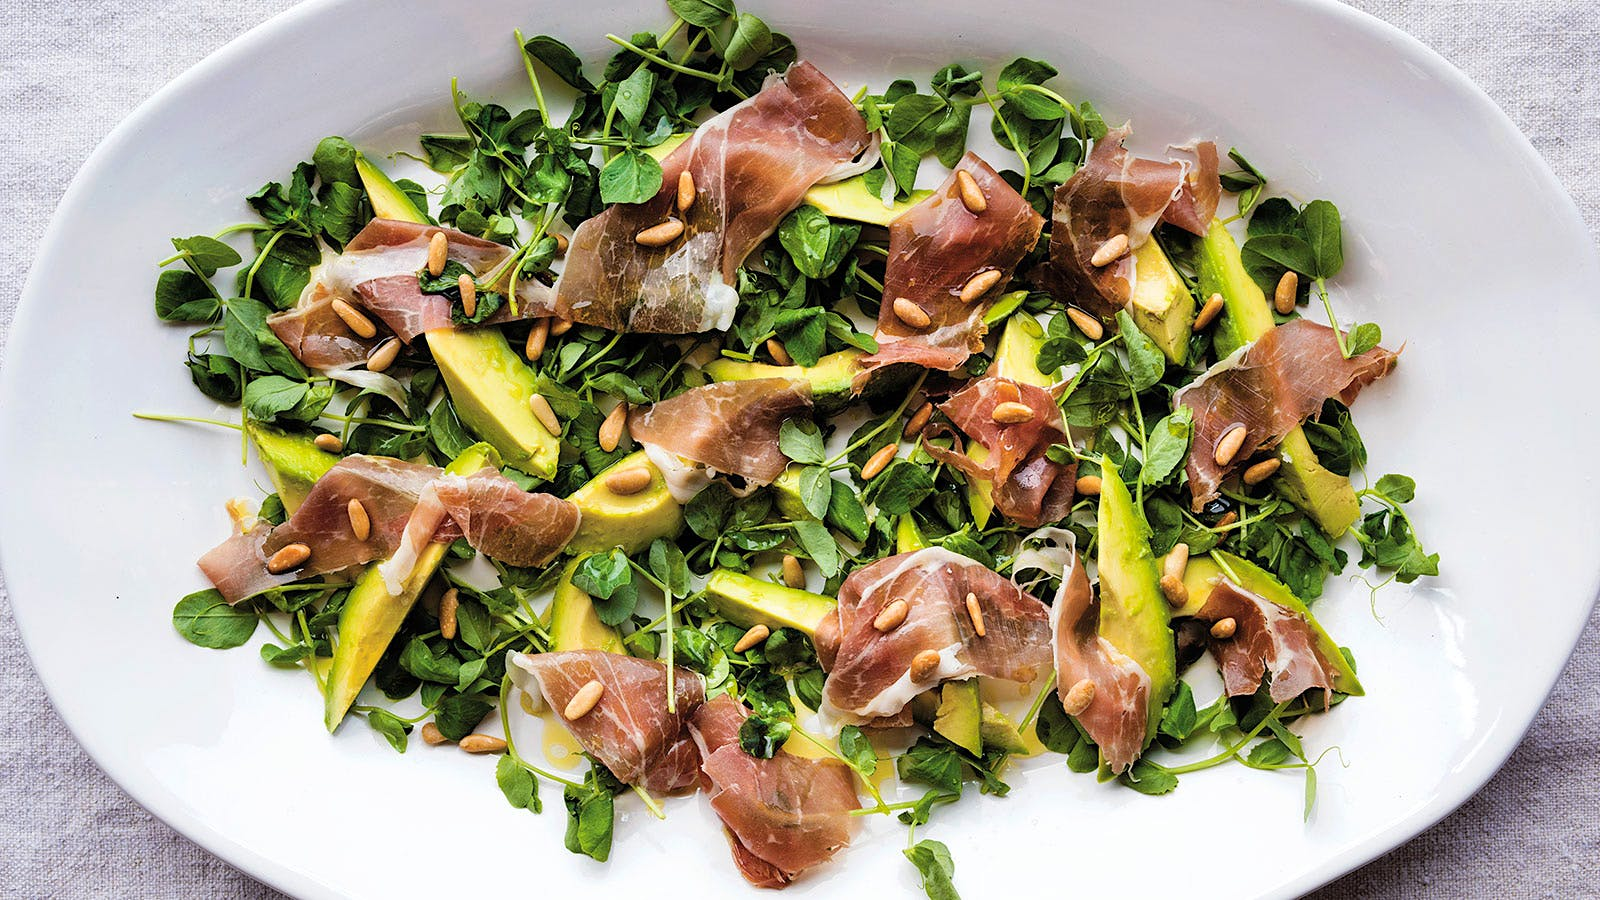 Pinkerton Avocadoswith Pea Shoots, Toasted Pine Nuts and Prosciutto